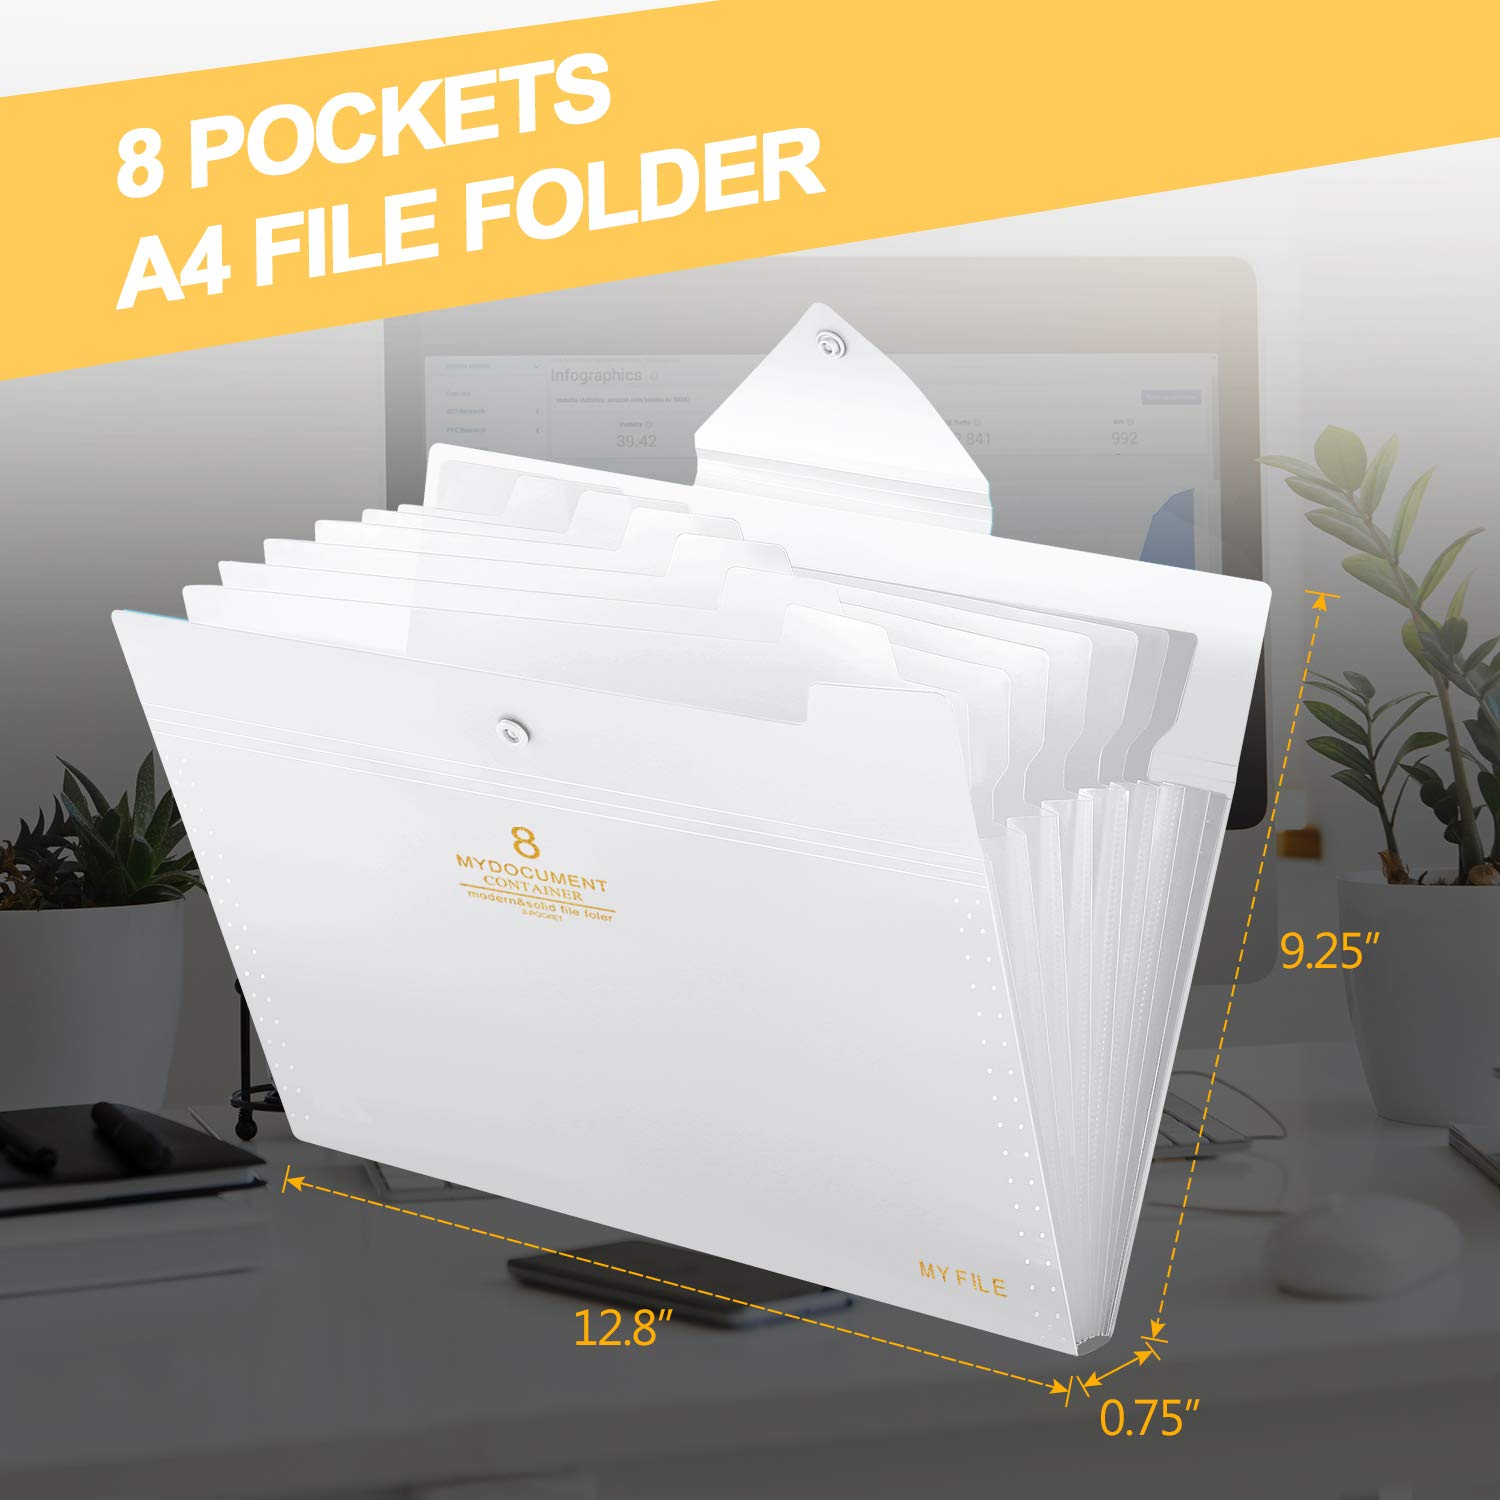 Skydue File Folders 8 Pockets Expanding File Folder Organizer with Tabs A4 Letter Size Accordion Document Paper Folder Organizer for School Office Transparent